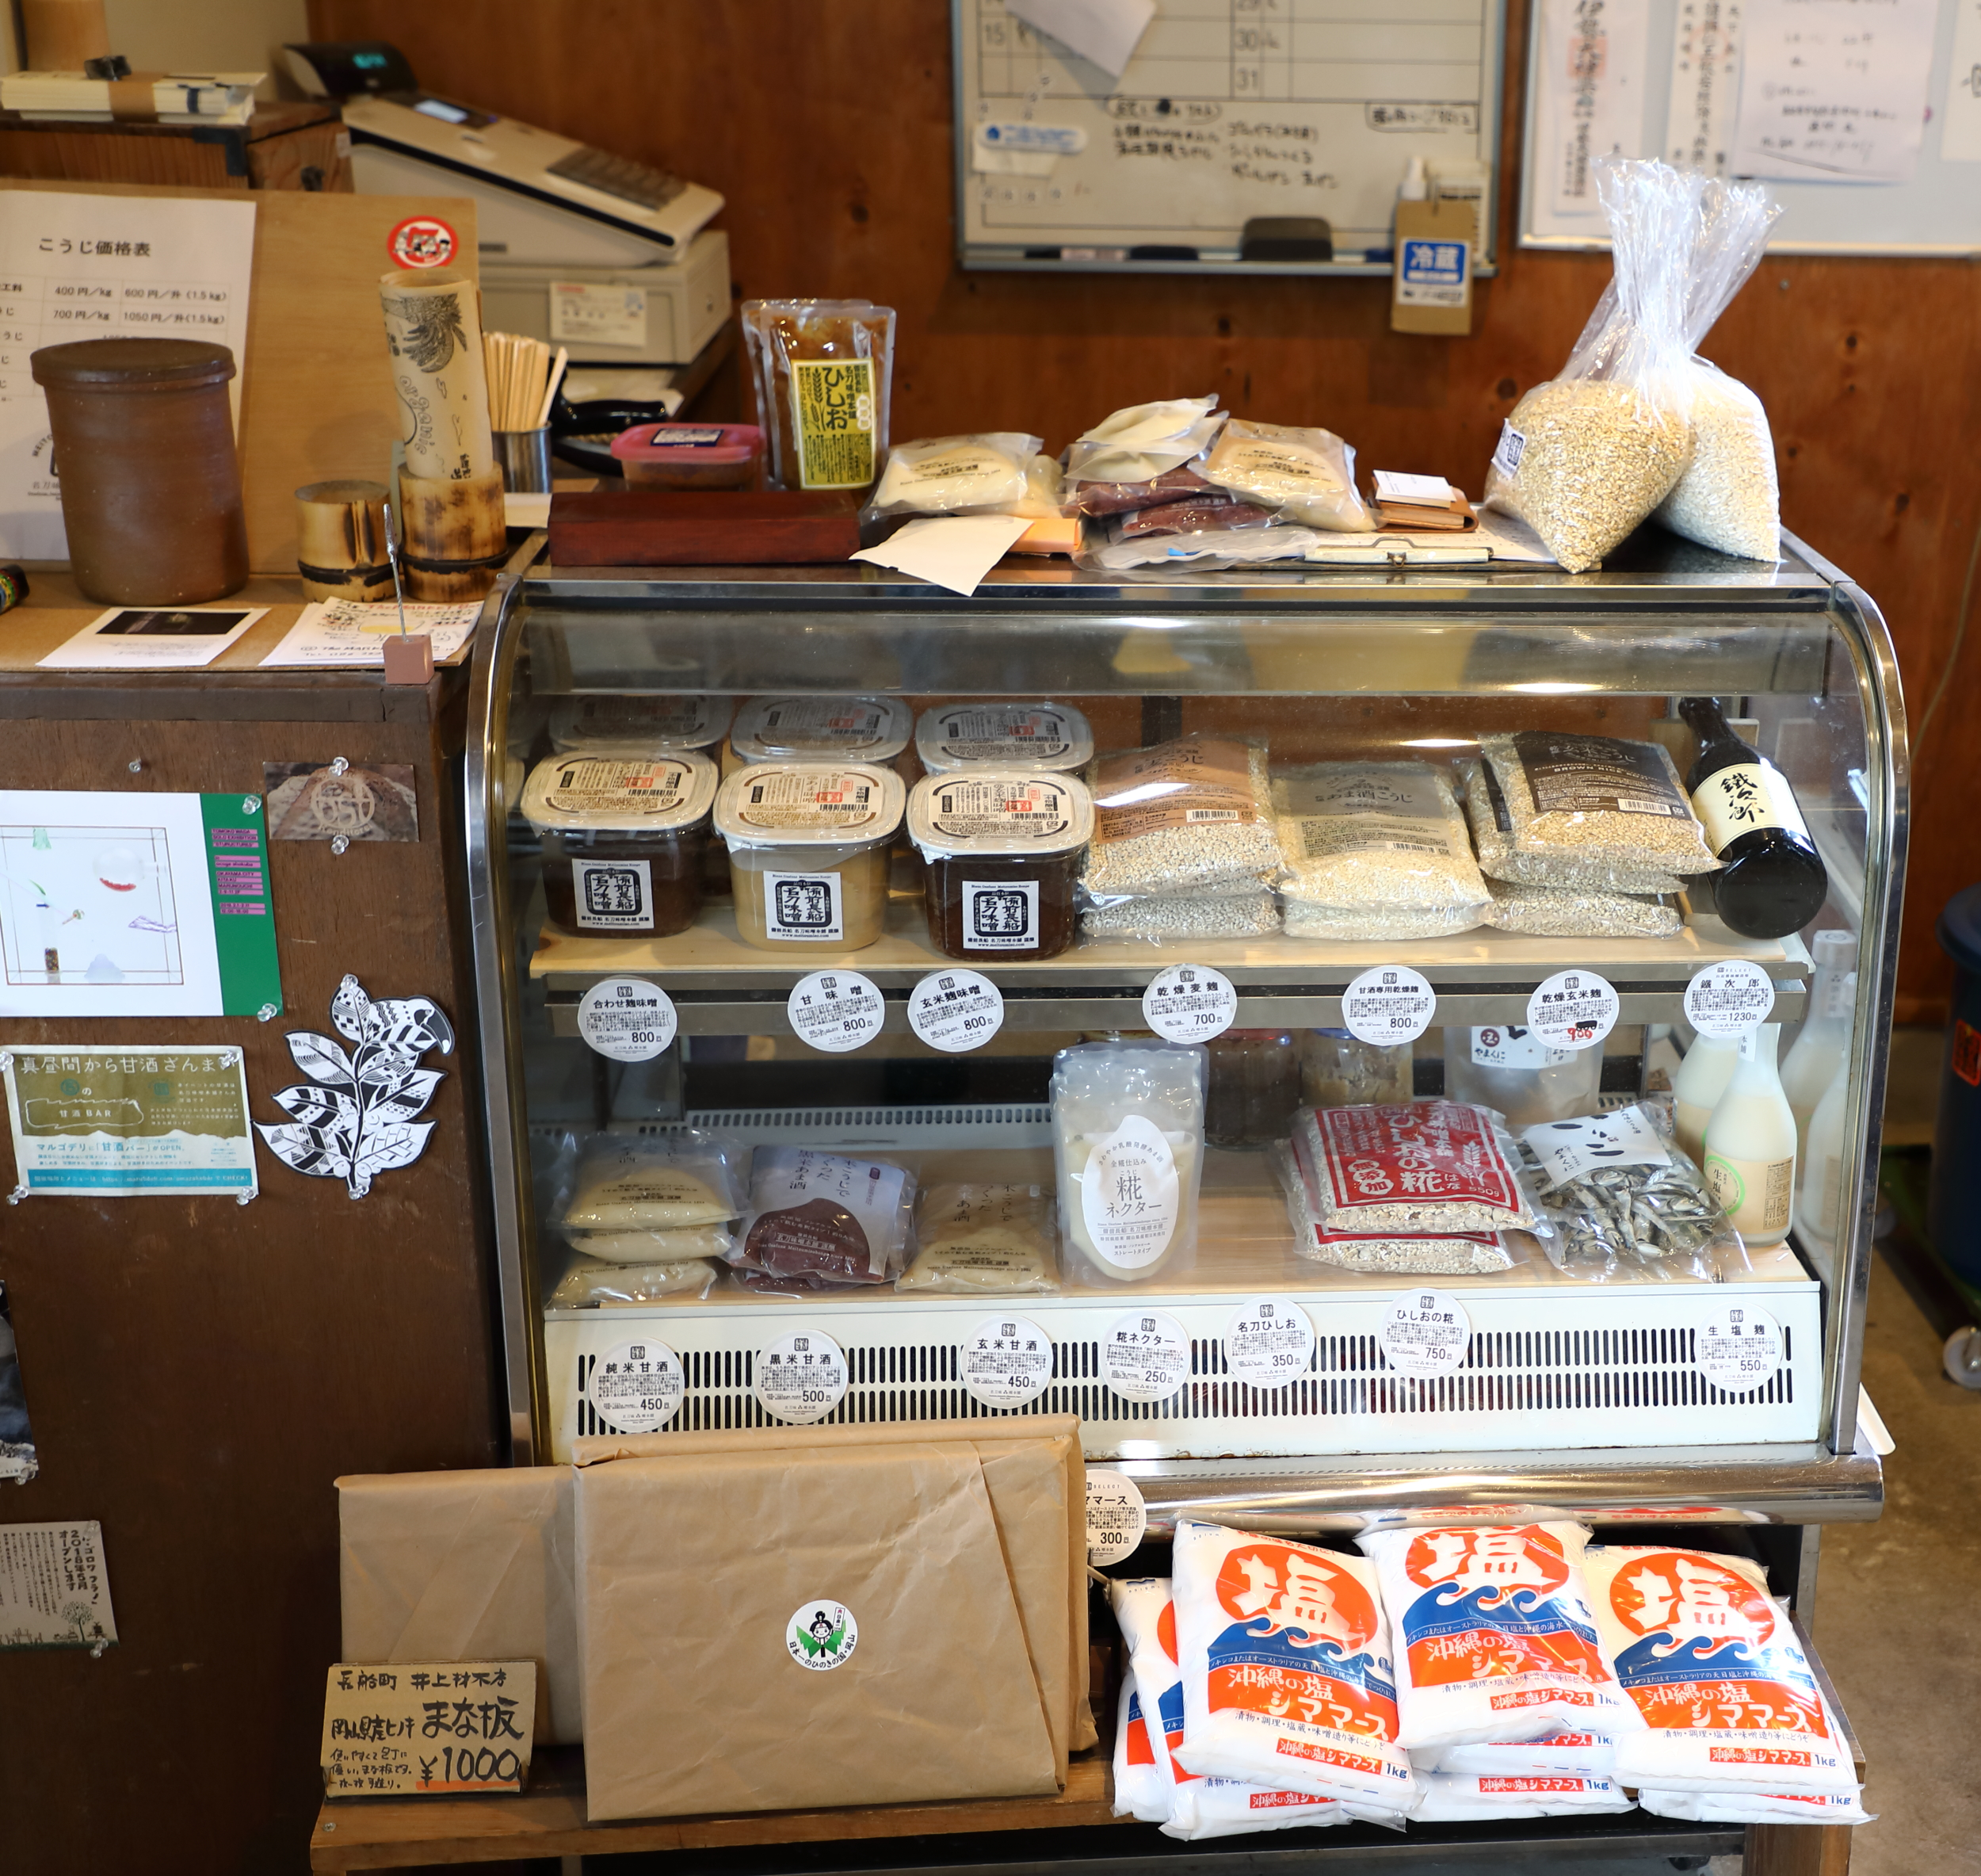 A refrigerator case of Meitou's fresh miso, koji, amazake, and other products at the entrance to the workshop.